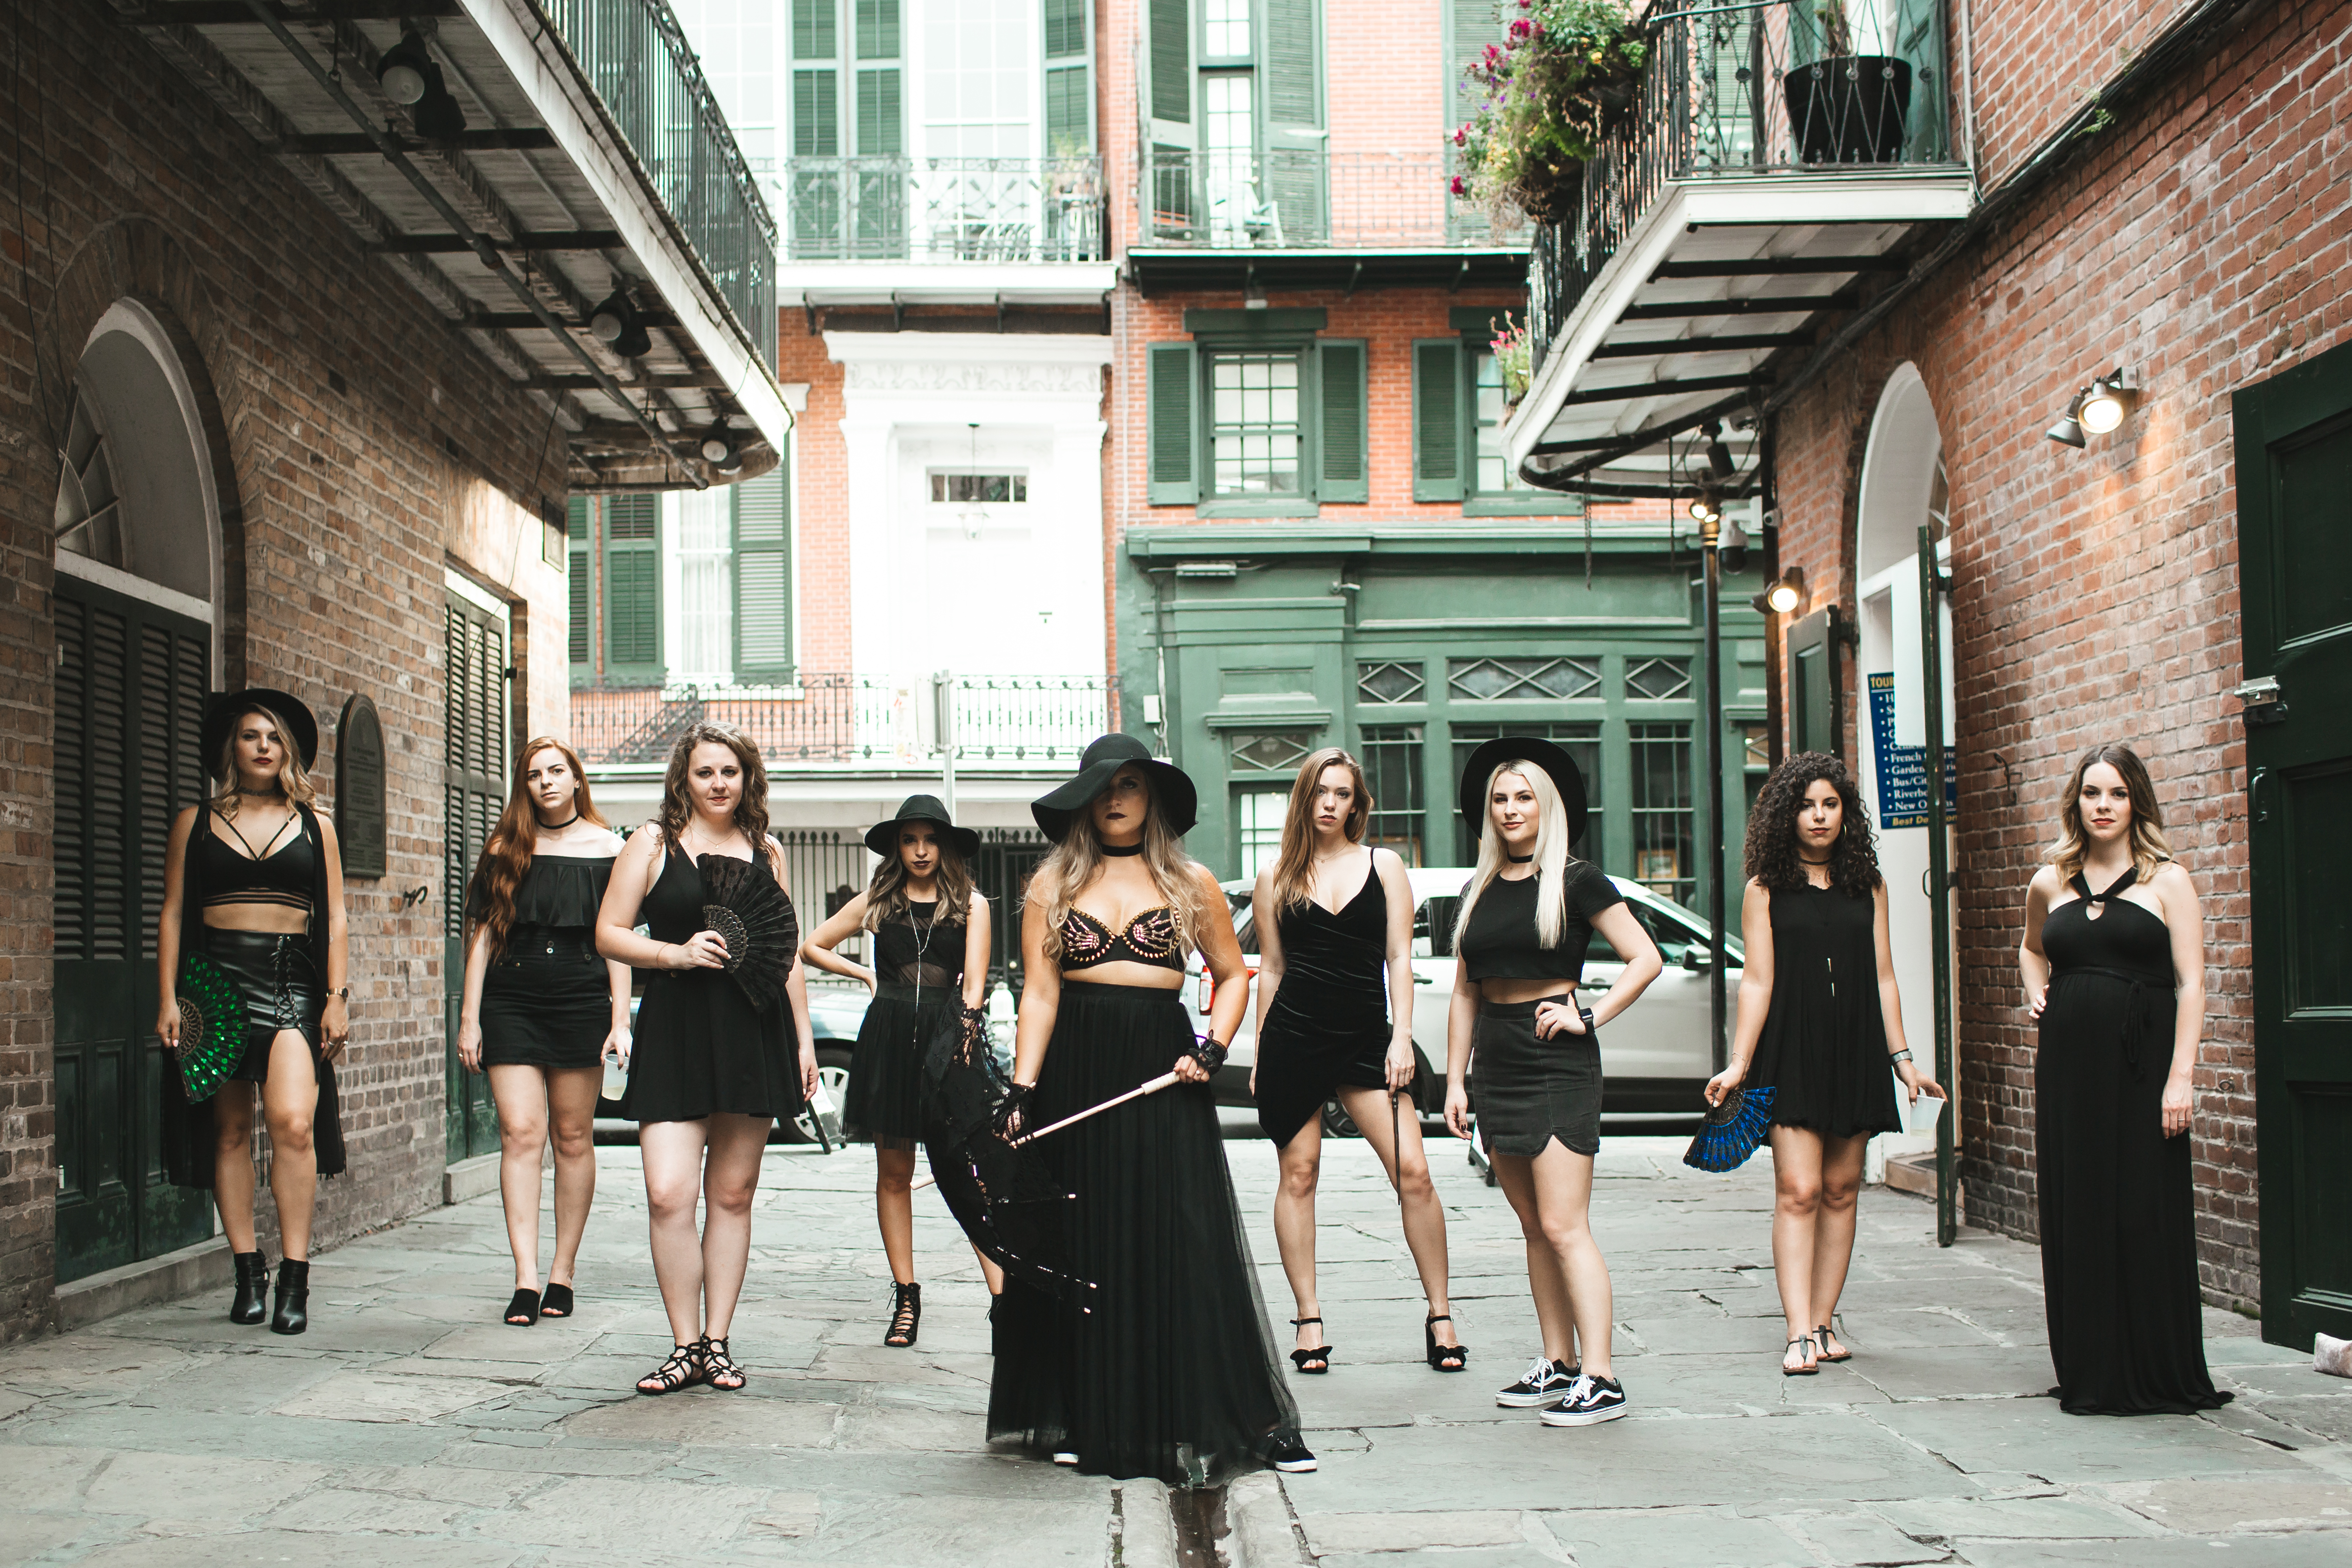 Rachel from Revelry in Skylar black skirt and witchy vibez from her supporting bridesmaids in all black for this Nola bachelorette photoshoot!